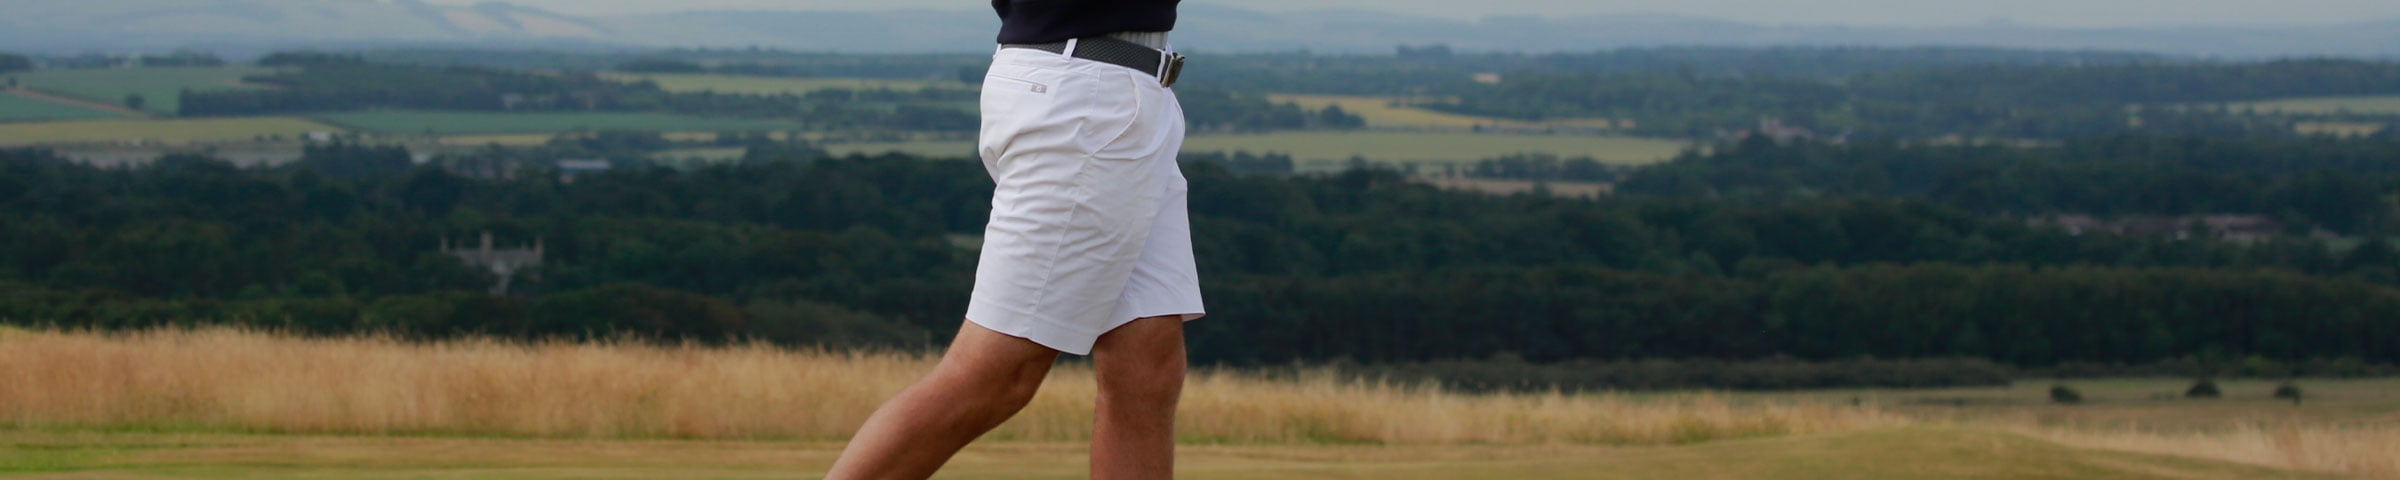 FootJoy Golf Shorts